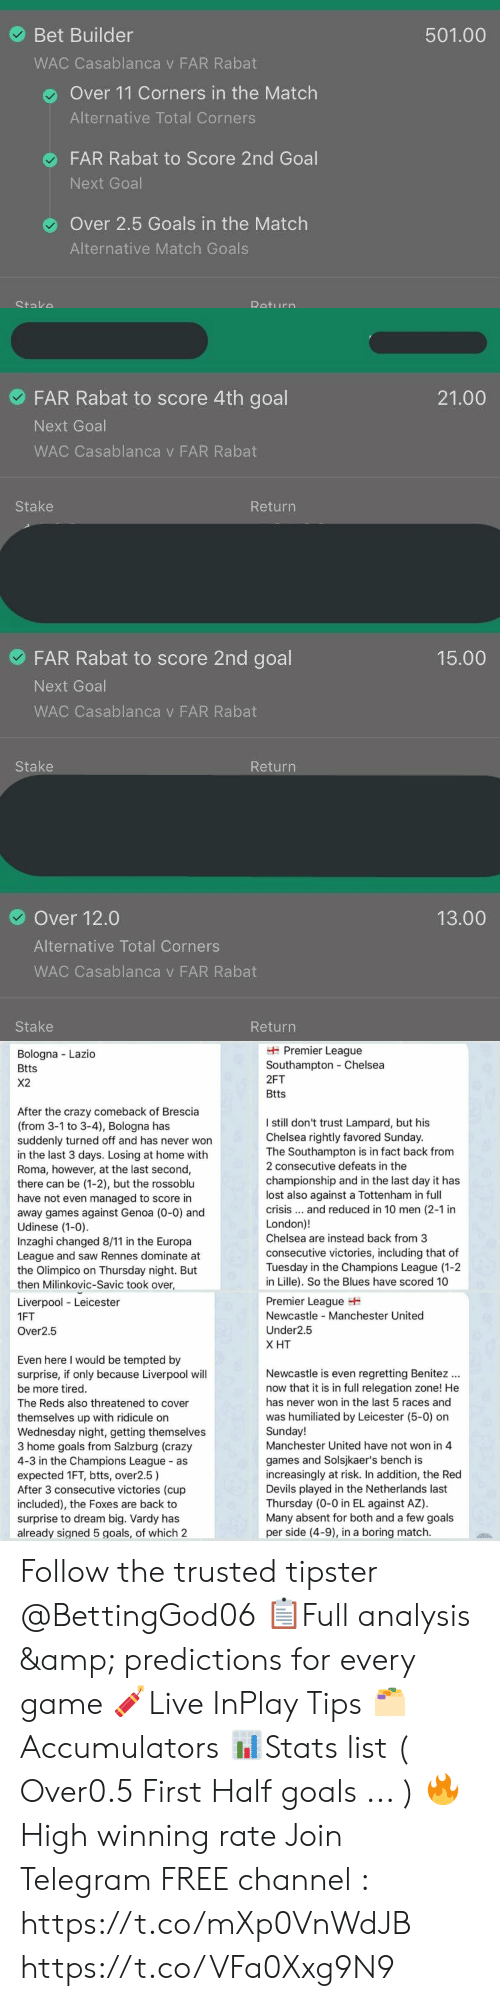 Benitez: Bet Builder  501.00  WAC Casablanca v FAR Rabat  Over 11 Corners in the Match  Alternative Total Corners  FAR Rabat to Score 2nd Goal  Next Goal  Over 2.5 Goals in the Match  Alternative Match Goals   FAR Rabat to score 4th goal  21.00  Next Goal  WAC Casablanca v FAR Rabat  Stake  Return  FAR Rabat to score 2nd goal  15.00  Next Goal  WAC Casablanca v FAR Rabat  Stake  Return  Over 12.0  13.00  Alternative Total Corners  WAC Casablanca v FAR Rabat  Stake  Return   Premier League  Southampton Chelsea  Bologna Lazio  Btts  2FT  X2  Btts  After the crazy comeback of Brescia  (from 3-1 to 3-4), Bologna has  suddenly turned off and has never won  in the last 3 days. Losing at home with  Roma, however, at the last second,  there can be (1-2), but the rossoblu  have not even managed to score in  away games against Genoa (0-0) and  Udinese (1-0).  Inzaghi changed 8/11 in the Europa  League and saw Rennes dominate at  the Olimpico on Thursday night. But  then Milinkovic-Savic took over,  I still don't trust Lampard, but his  Chelsea rightly favored Sunday.  The Southampton is in fact back from  2 consecutive defeats in the  championship and in the last day it has  lost also against a Tottenham in full  crisis... and reduced in 10 men (2-1 in  London)!  Chelsea are instead back from 3  consecutive victories, including that of  Tuesday in the Champions League (1-2  in Lille). So the Blues have scored 10  Premier League  Newcastle Manchester United  Liverpool Leicester  1FT  Under2.5  Over2.5  Х Т  Even here I would be tempted by  surprise, if only because Liverpool will  Newcastle is even regretting Benitez  now that it is in full relegation zone! He  be more tired.  has never won in the last 5 races and  The Reds also threatened to cover  was humiliated by Leicester (5-0) on  Sunday!  Manchester United have not won in 4  themselves up with ridicule on  Wednesday night, getting themselves  3 home goals from Salzburg (crazy  4-3 in the Champions League as  expected 1F